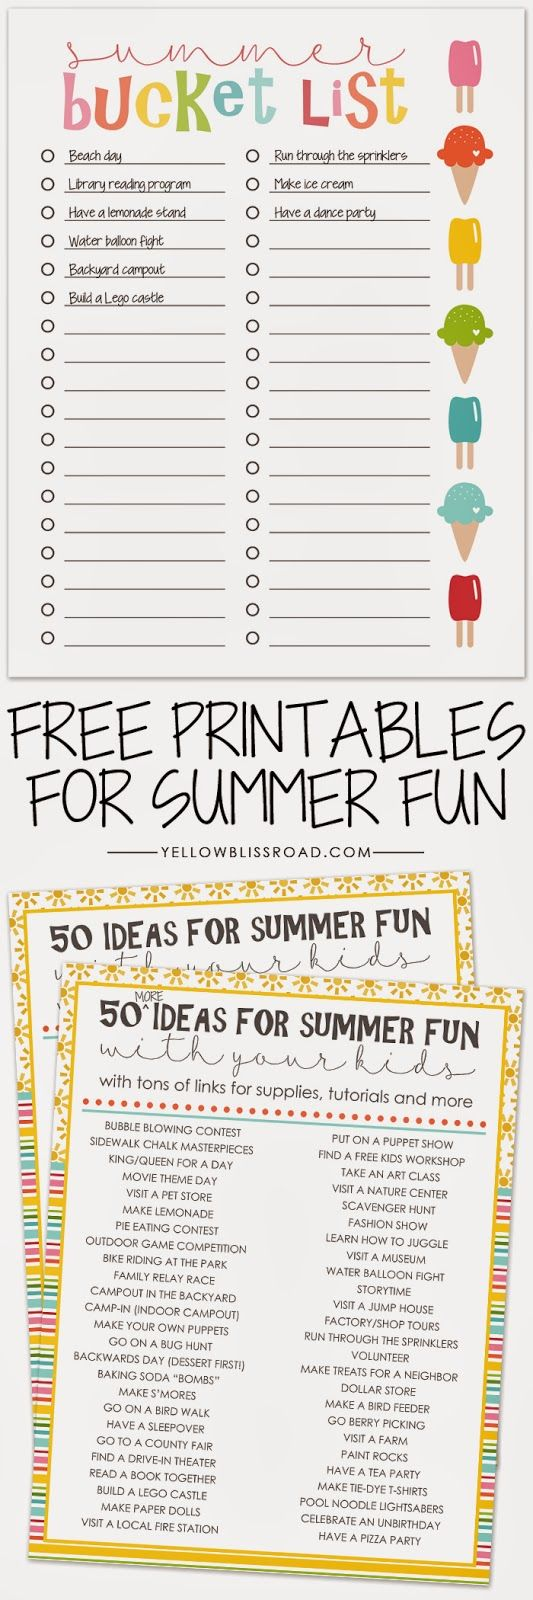 50 Fun Summer Activities You Can Print Out Free Checklist Printable With Lots Of To Do Your Kids